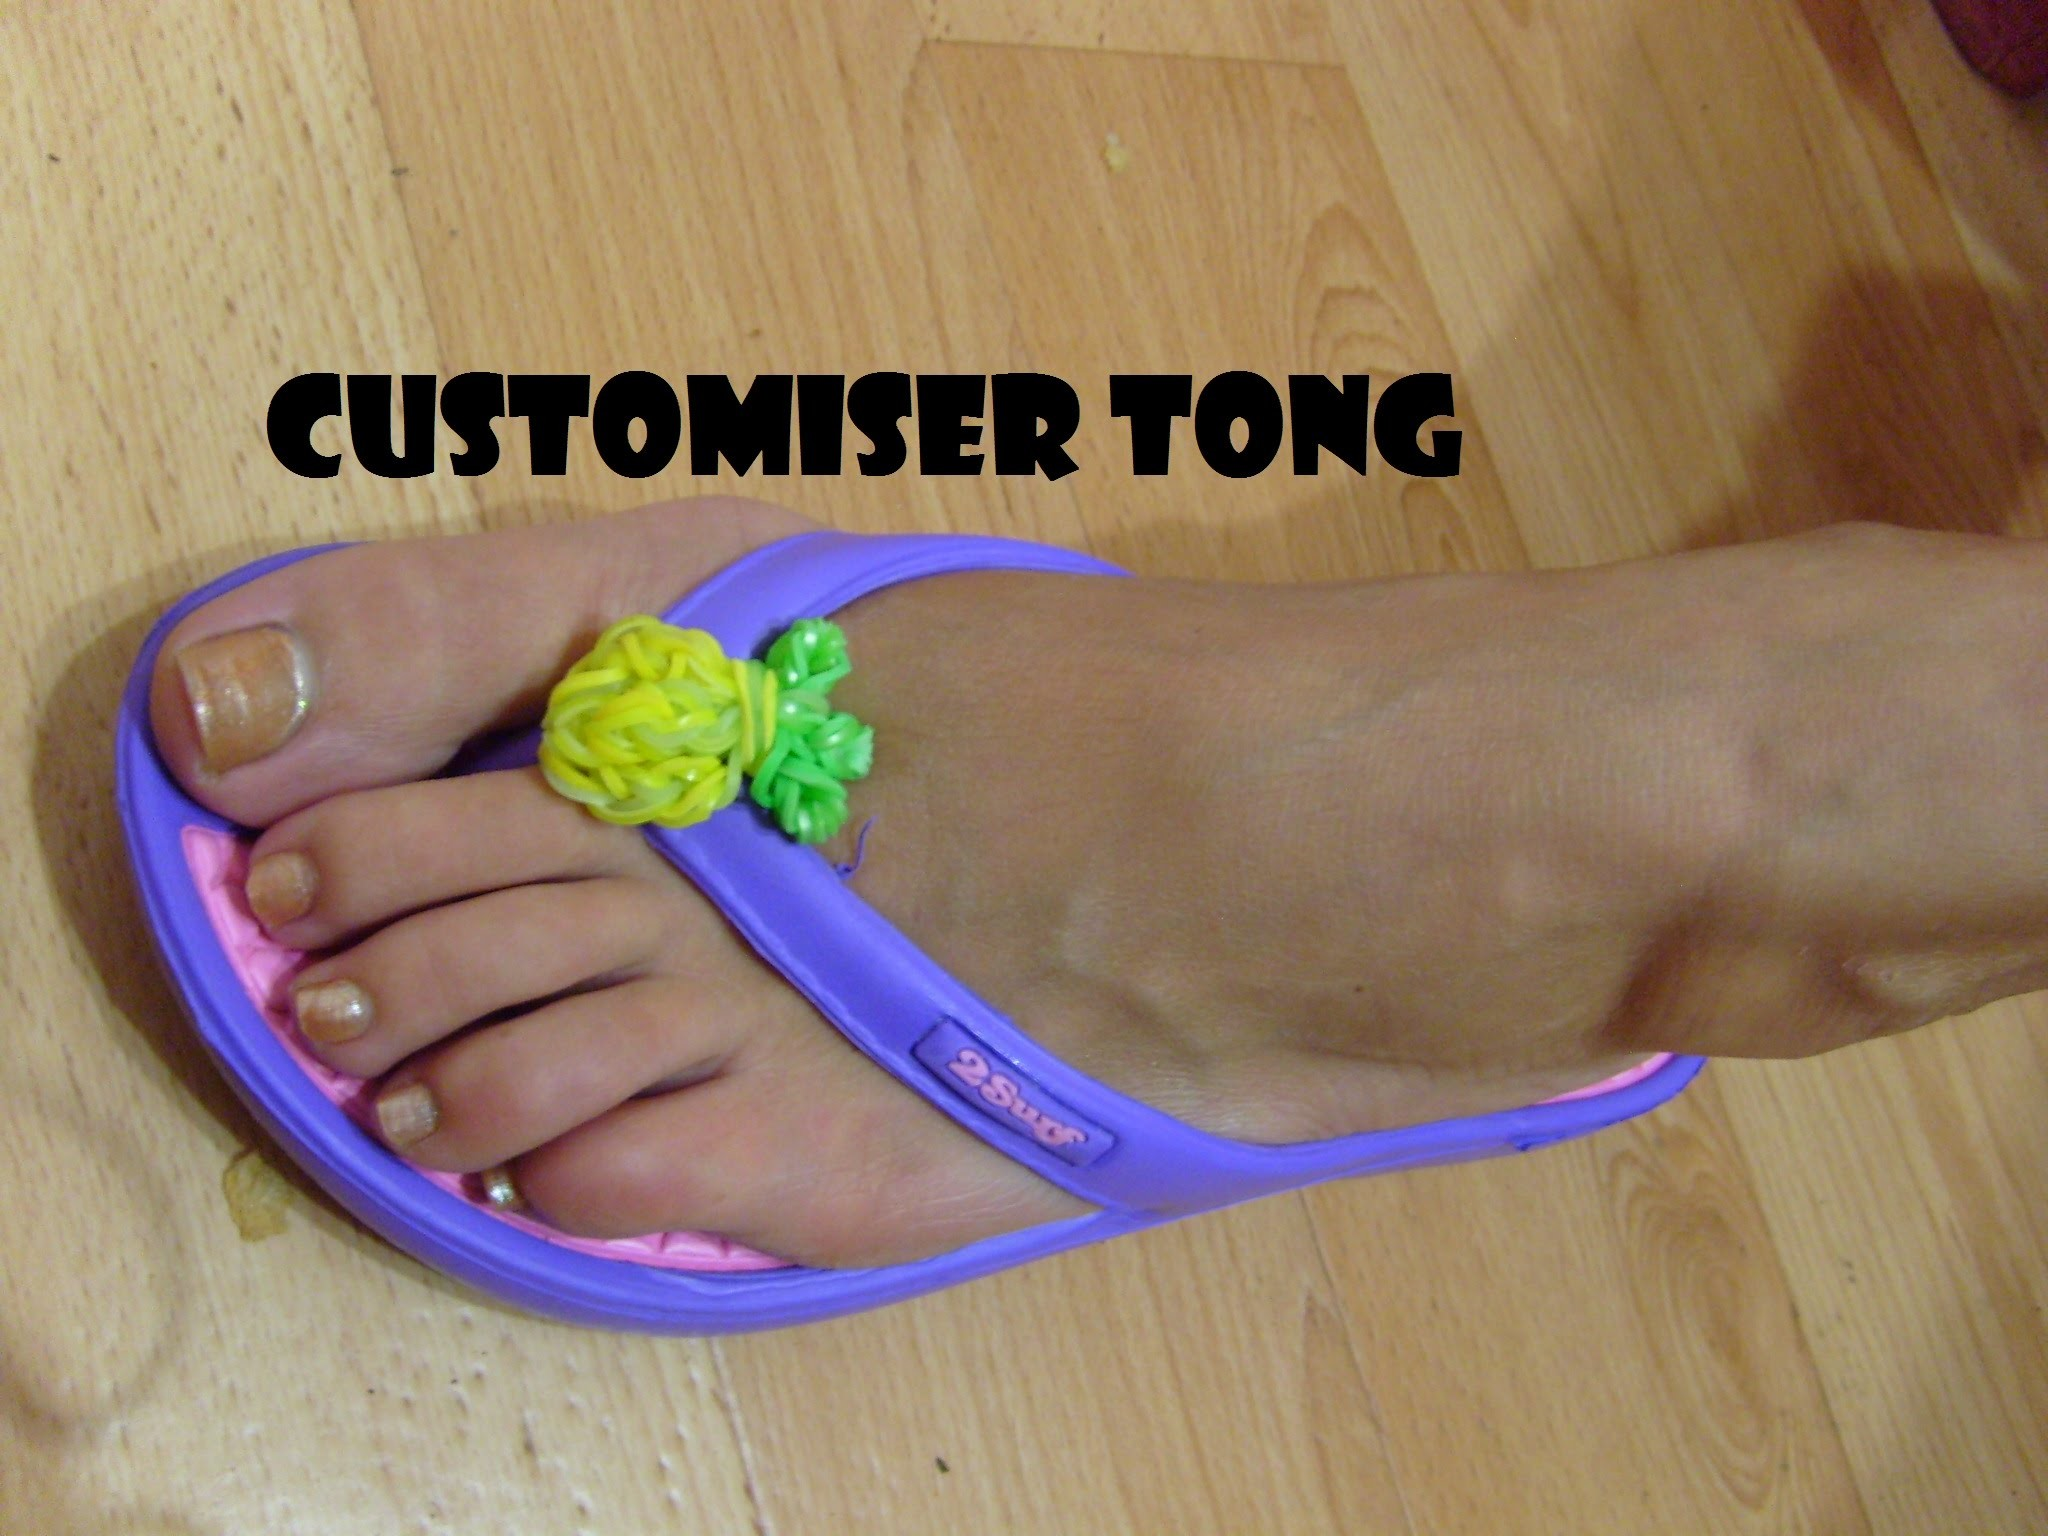 Customiser vos tongs,rainbow loom bands, bracelet elastique. Tuto francais